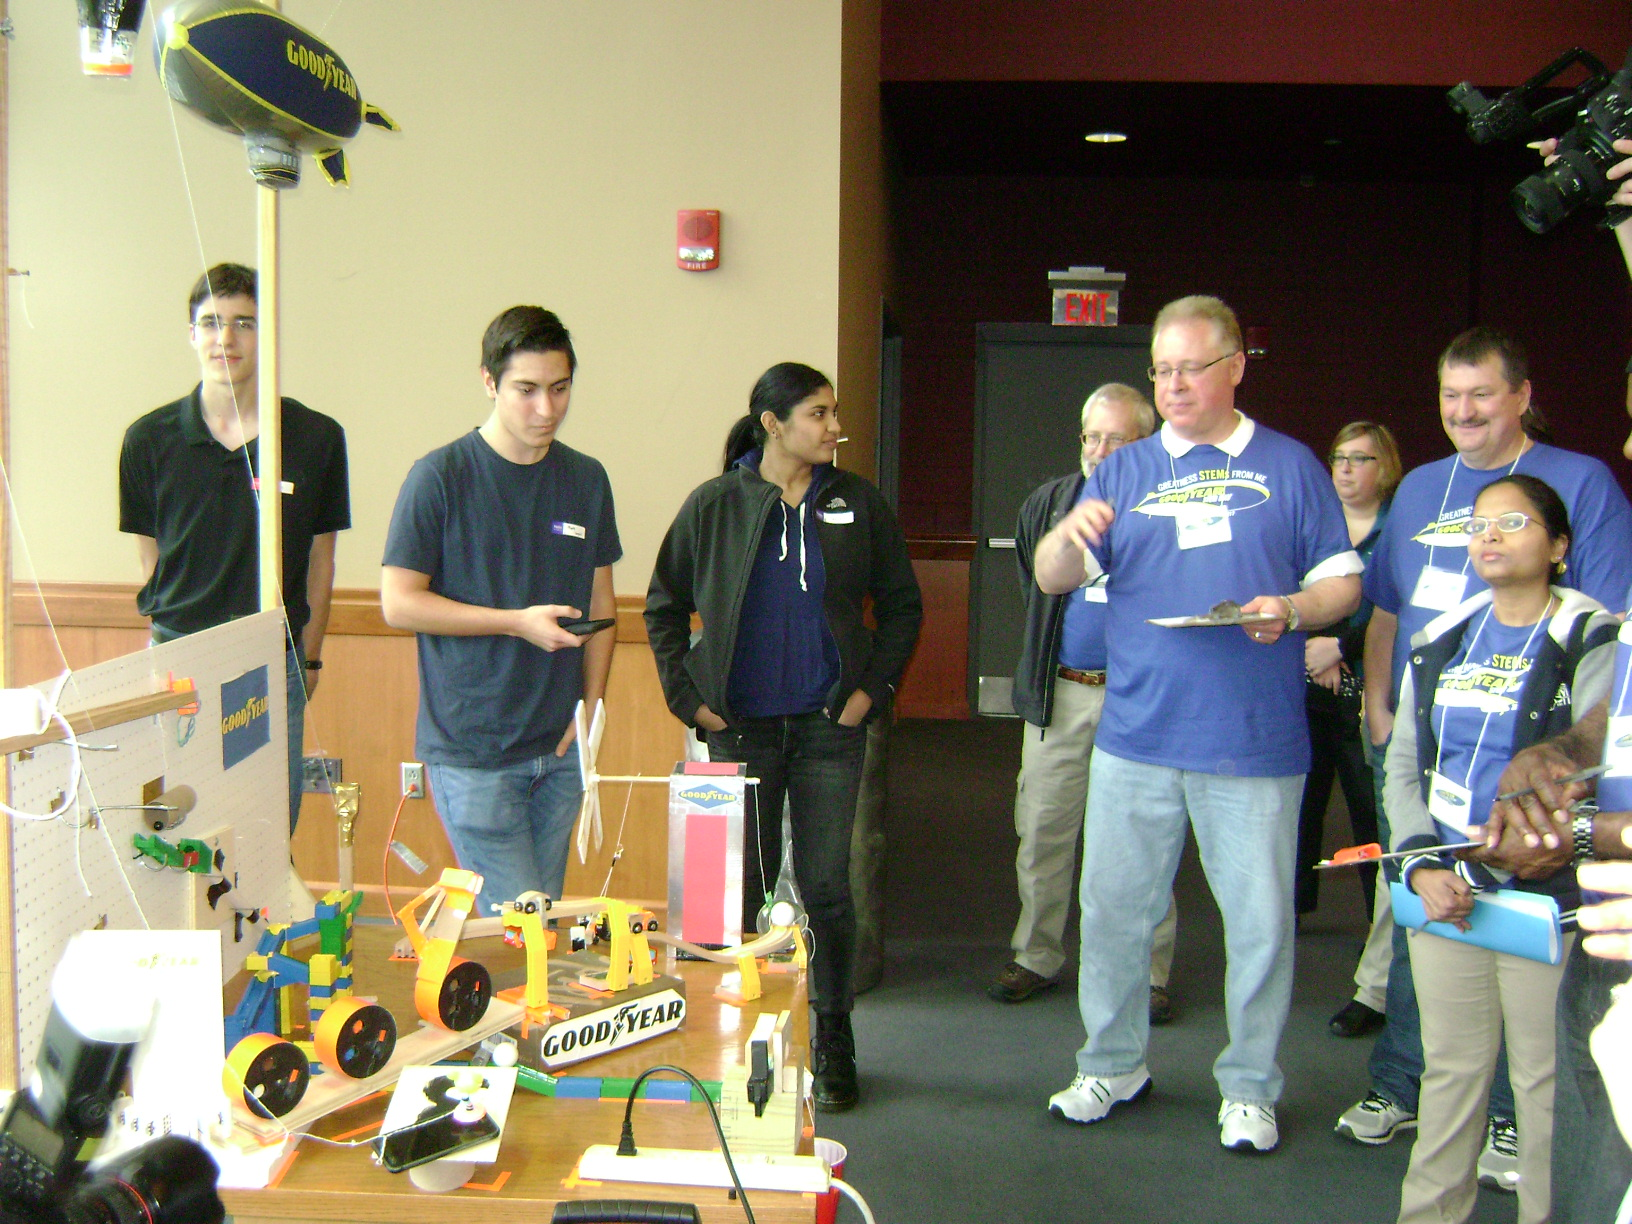 2017 Good Year STEM Career Day - Judging of the Rube Goldberg Contest